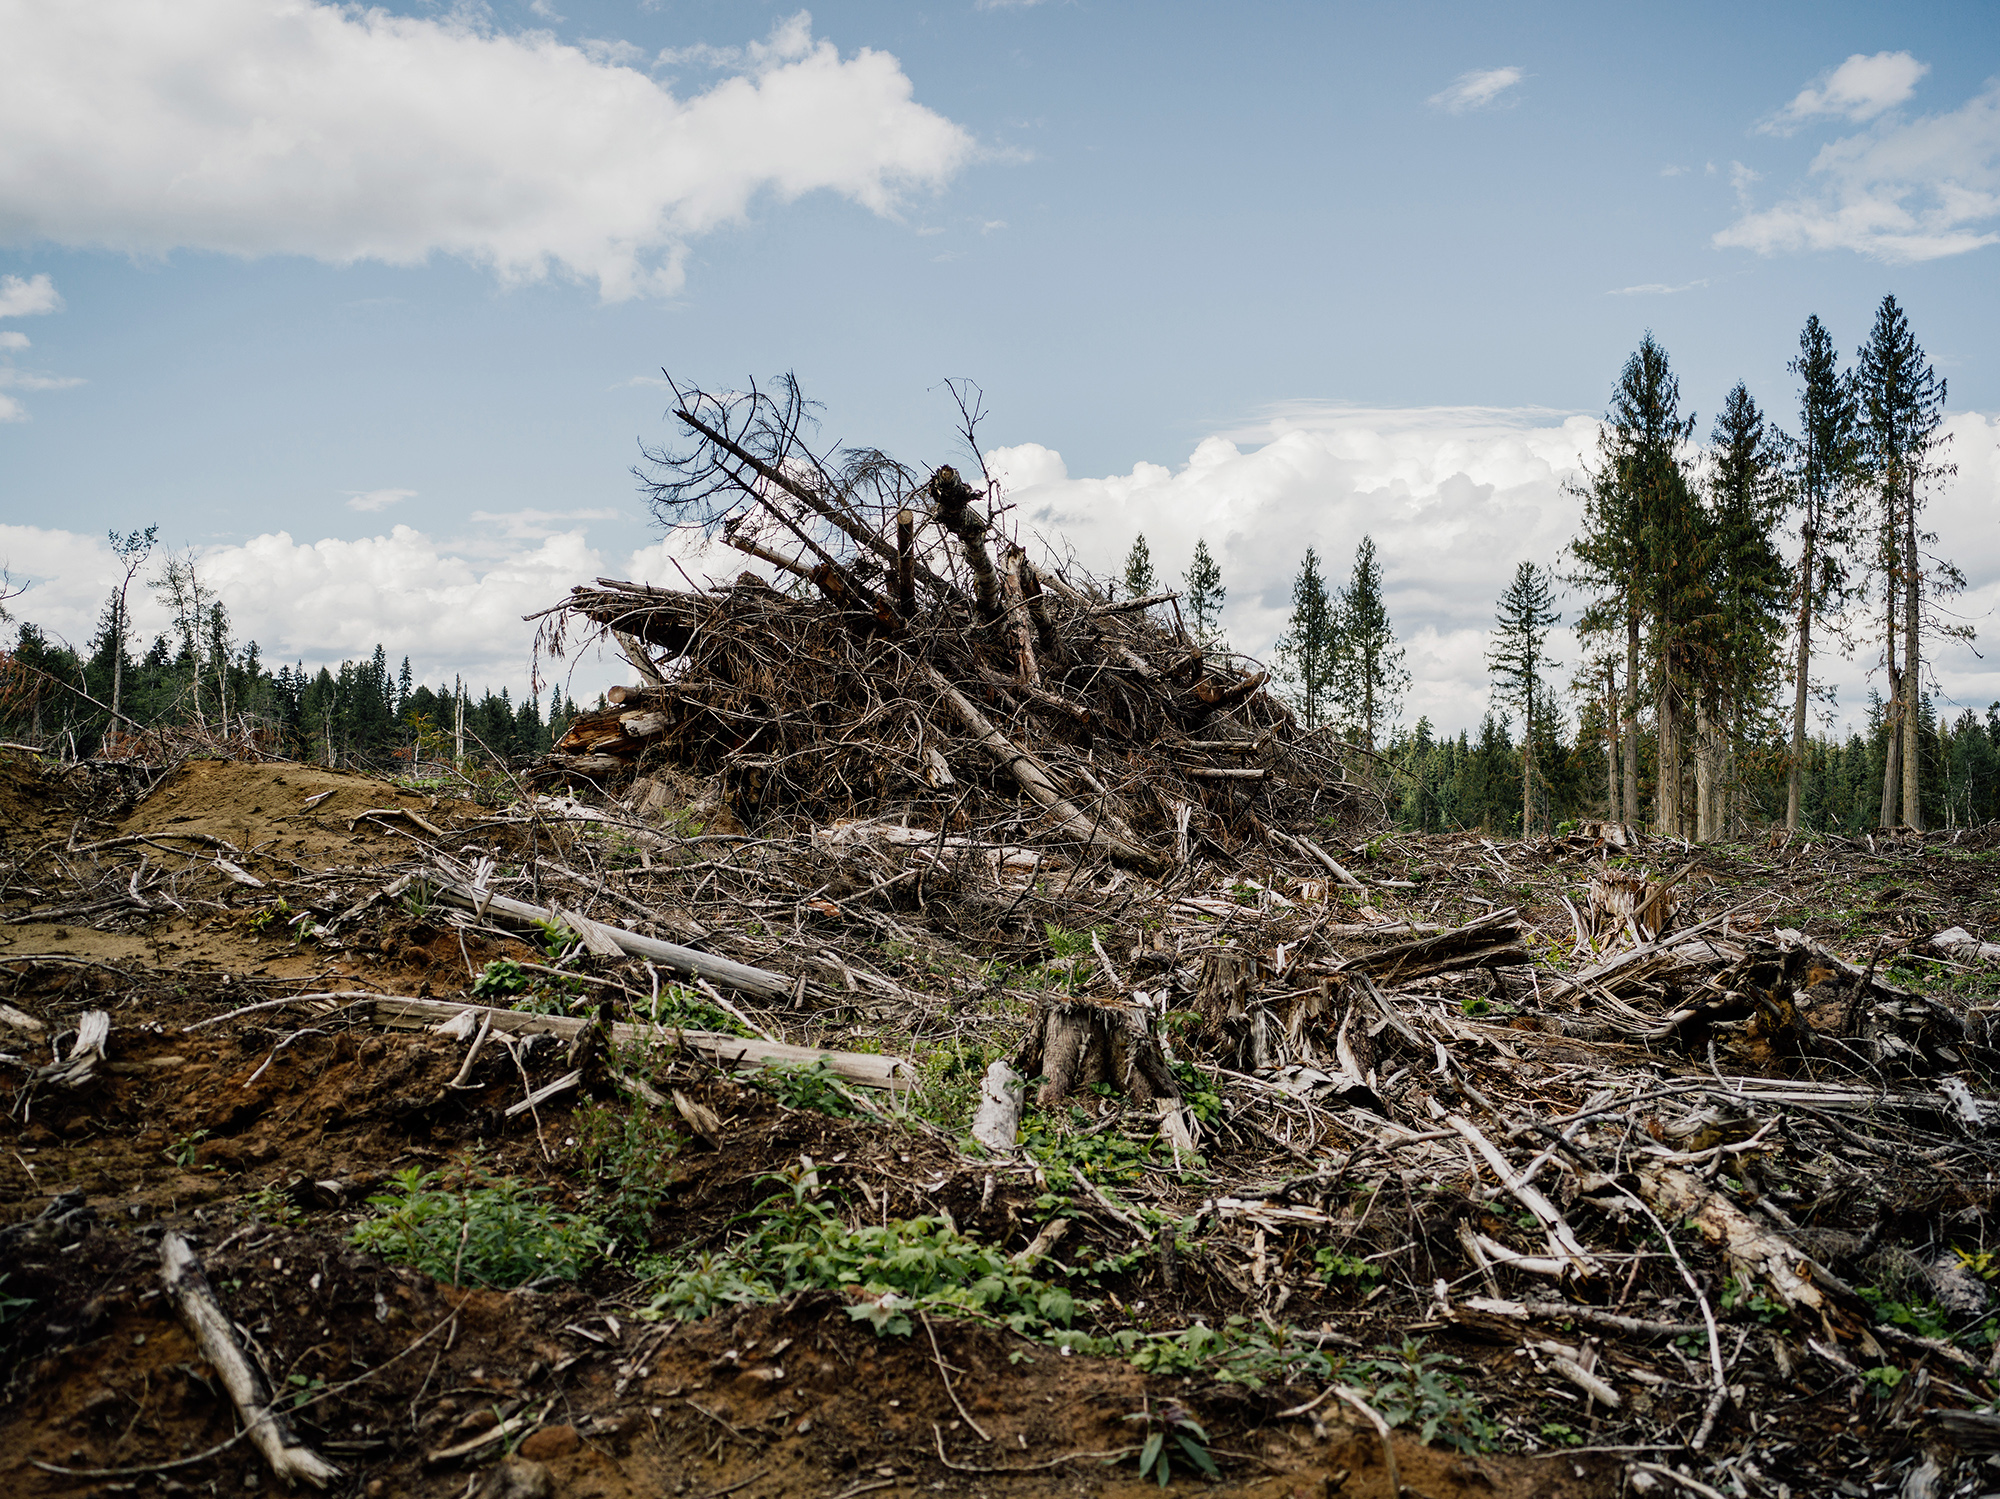 Clearcut near Highway 16, west of Prince George BC.